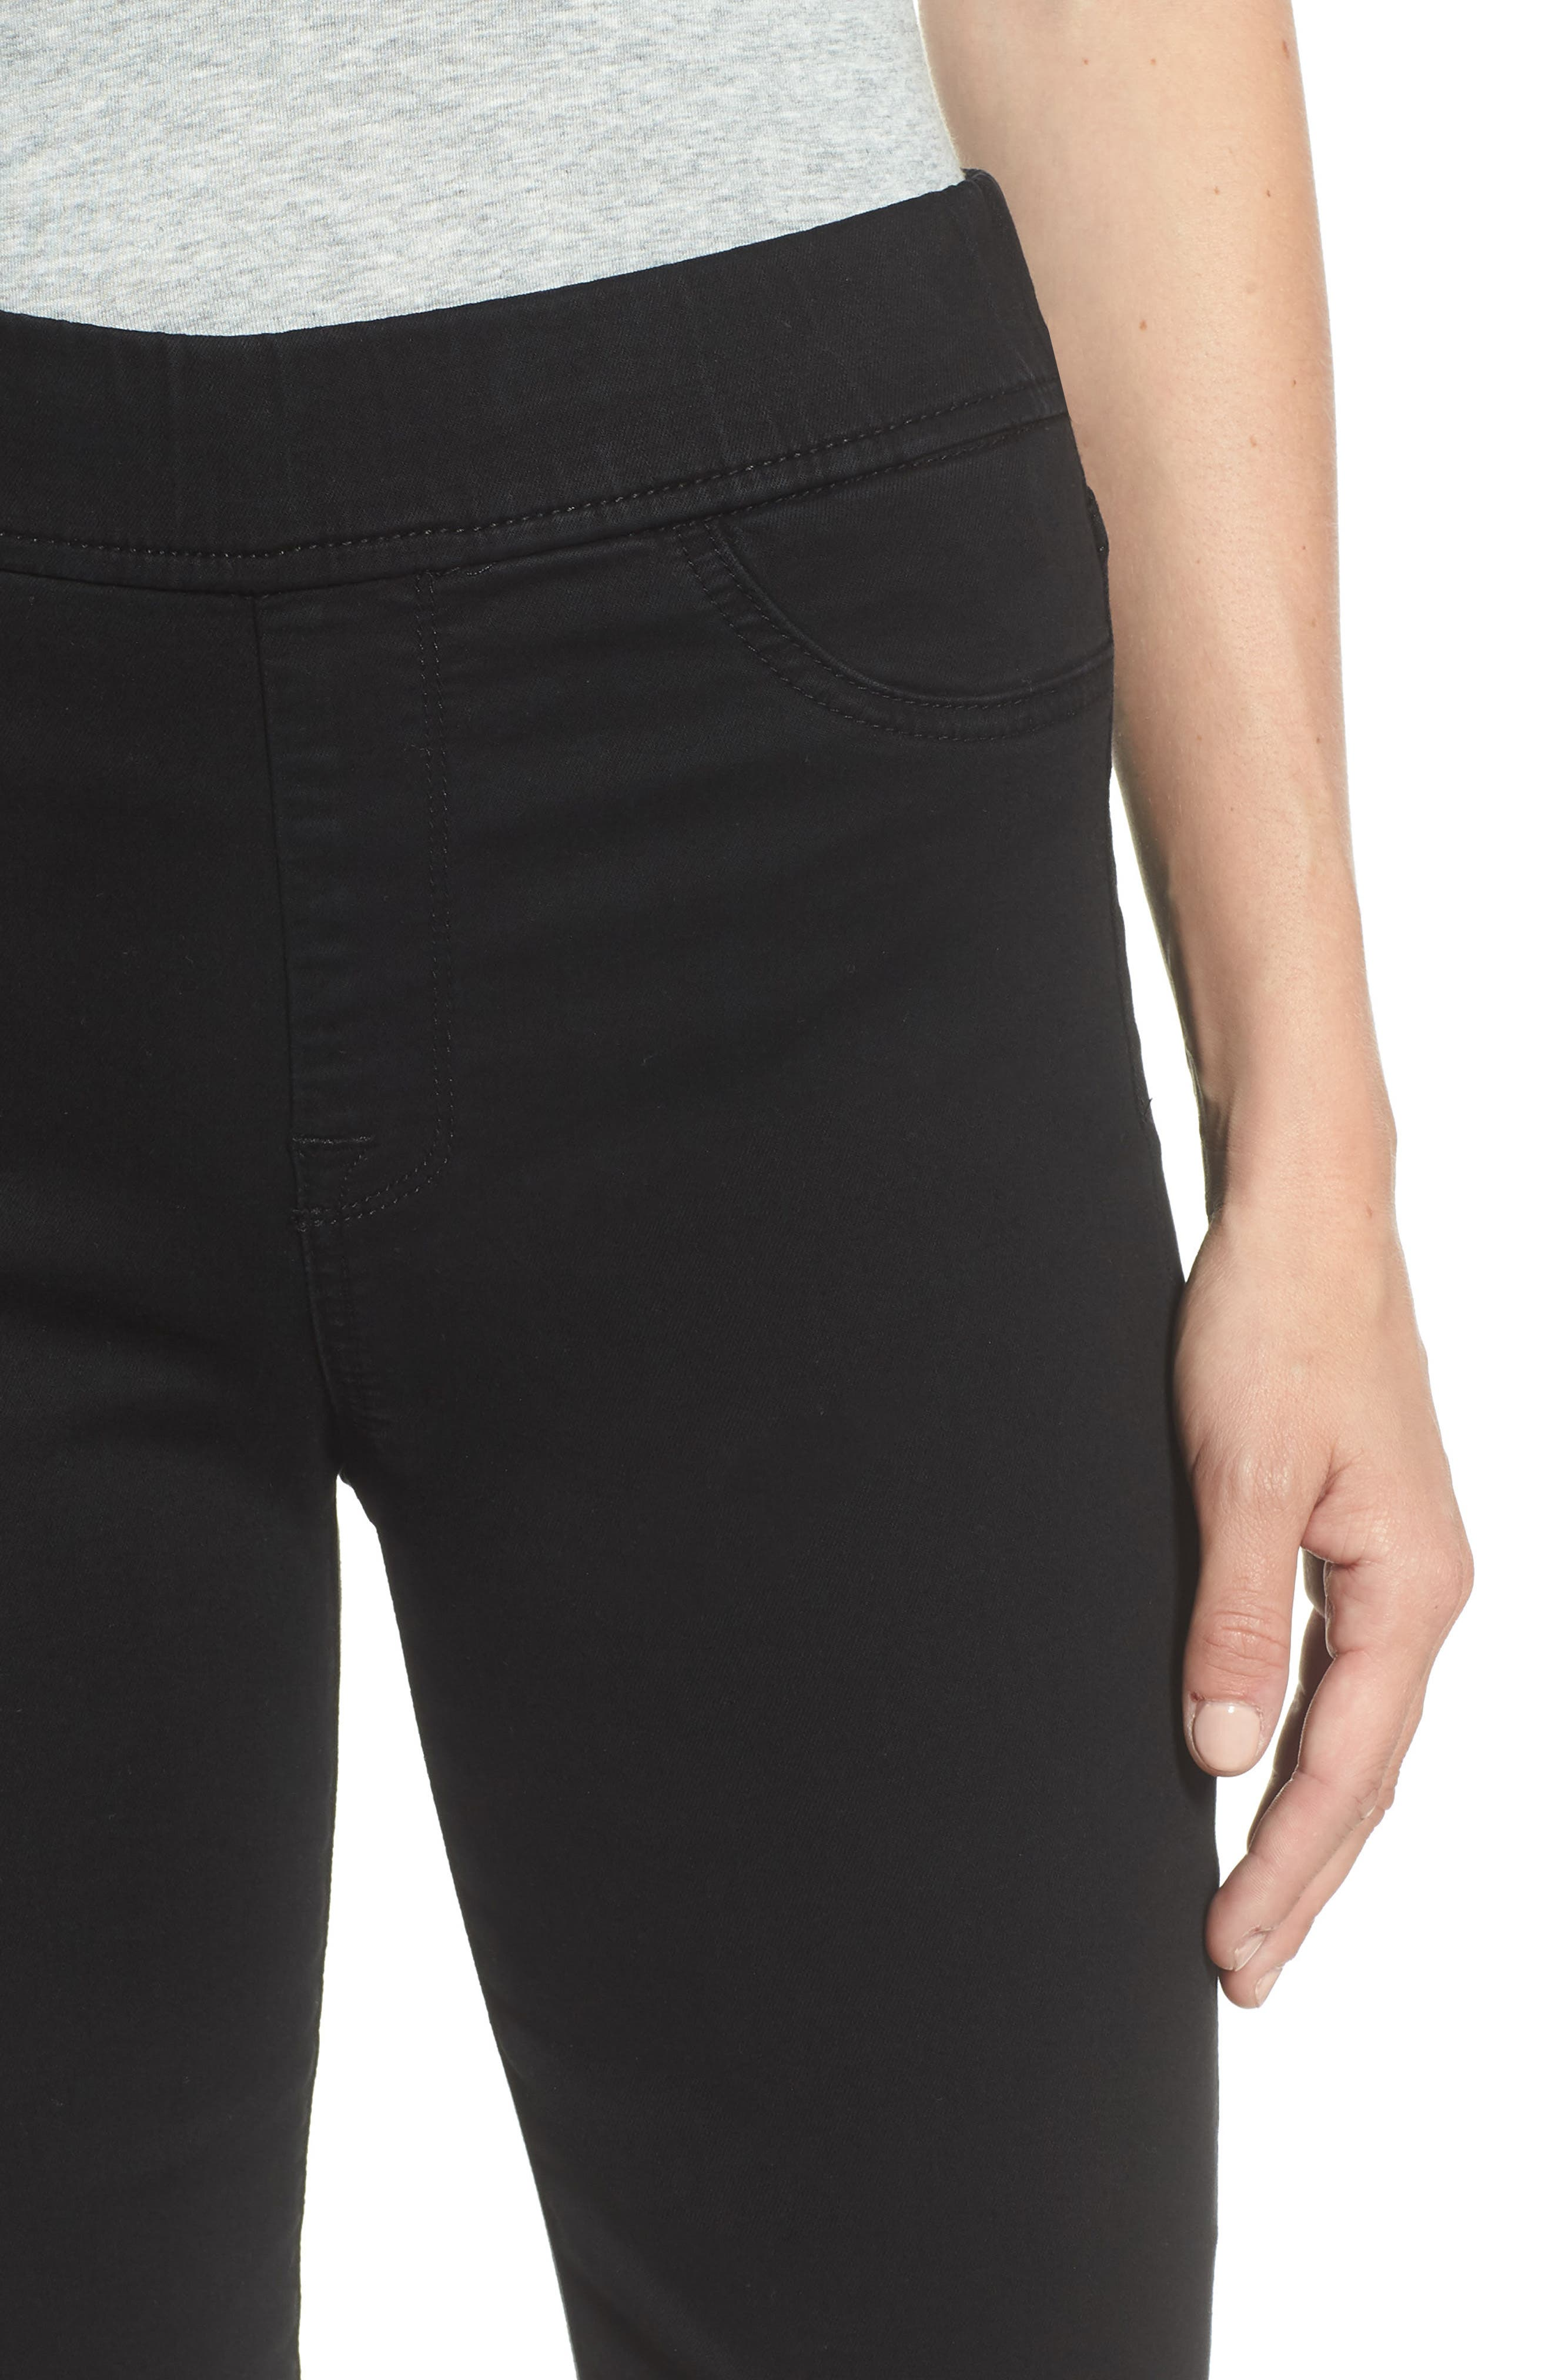 Comfort Skinny Denim Leggings,                             Alternate thumbnail 4, color,                             RICHE TOUCH BLACK NOIR